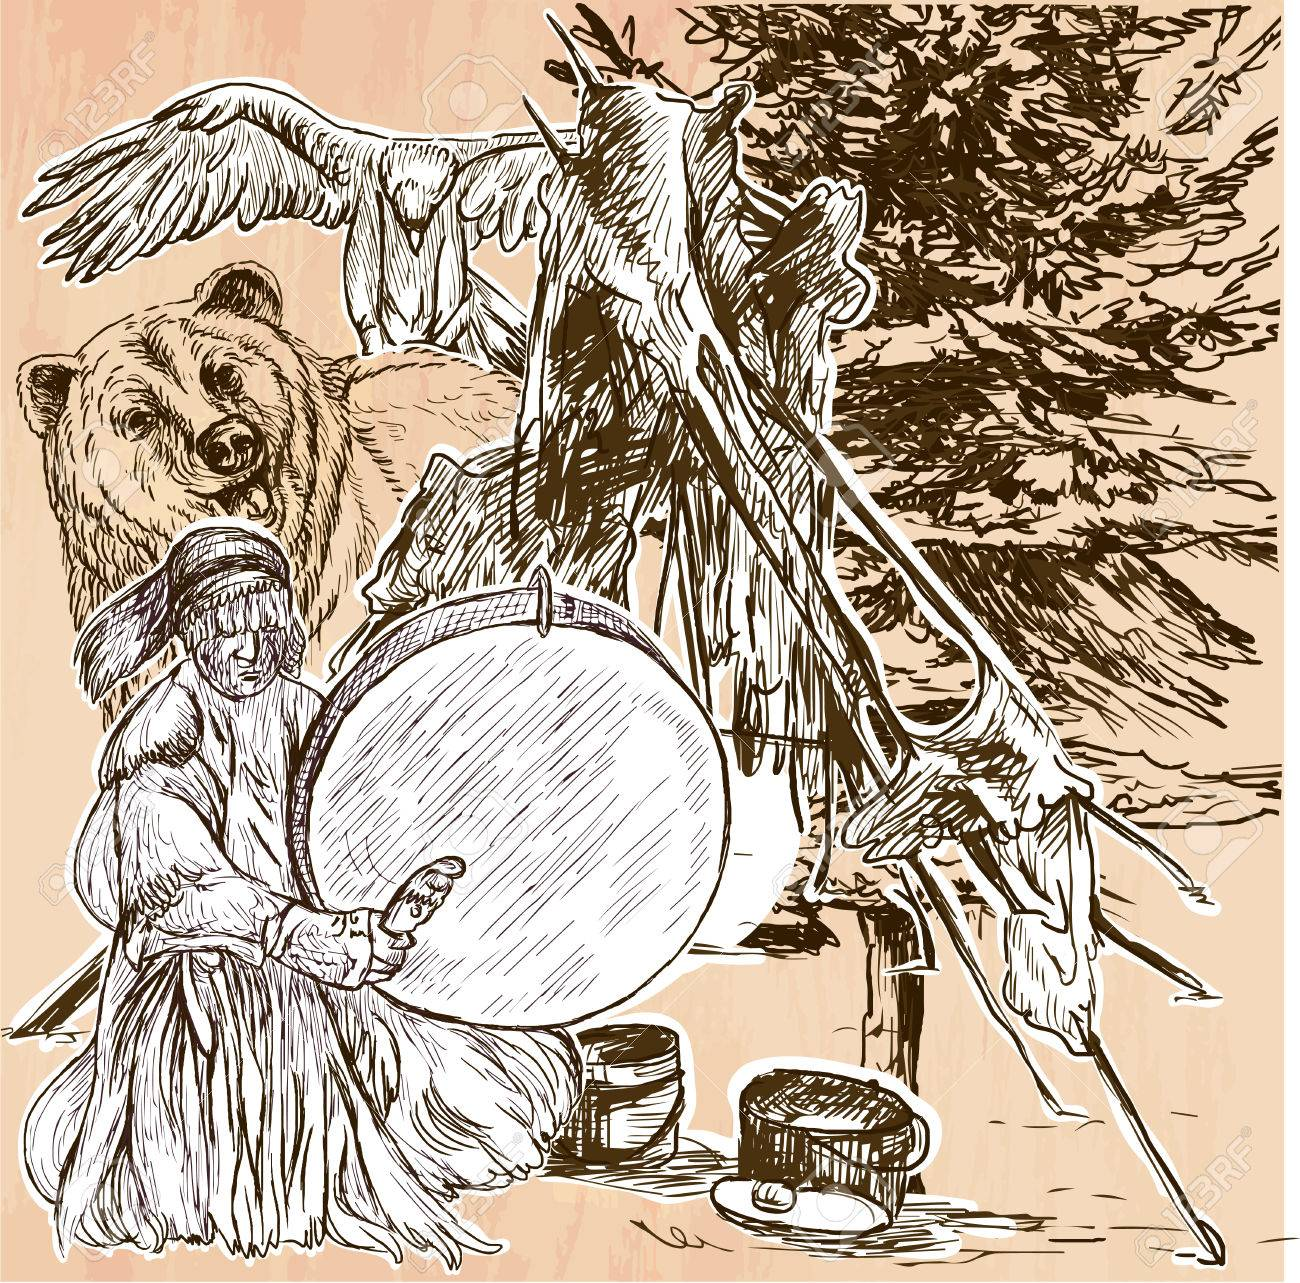 shaman native man with drum drummer sitting in the forest near